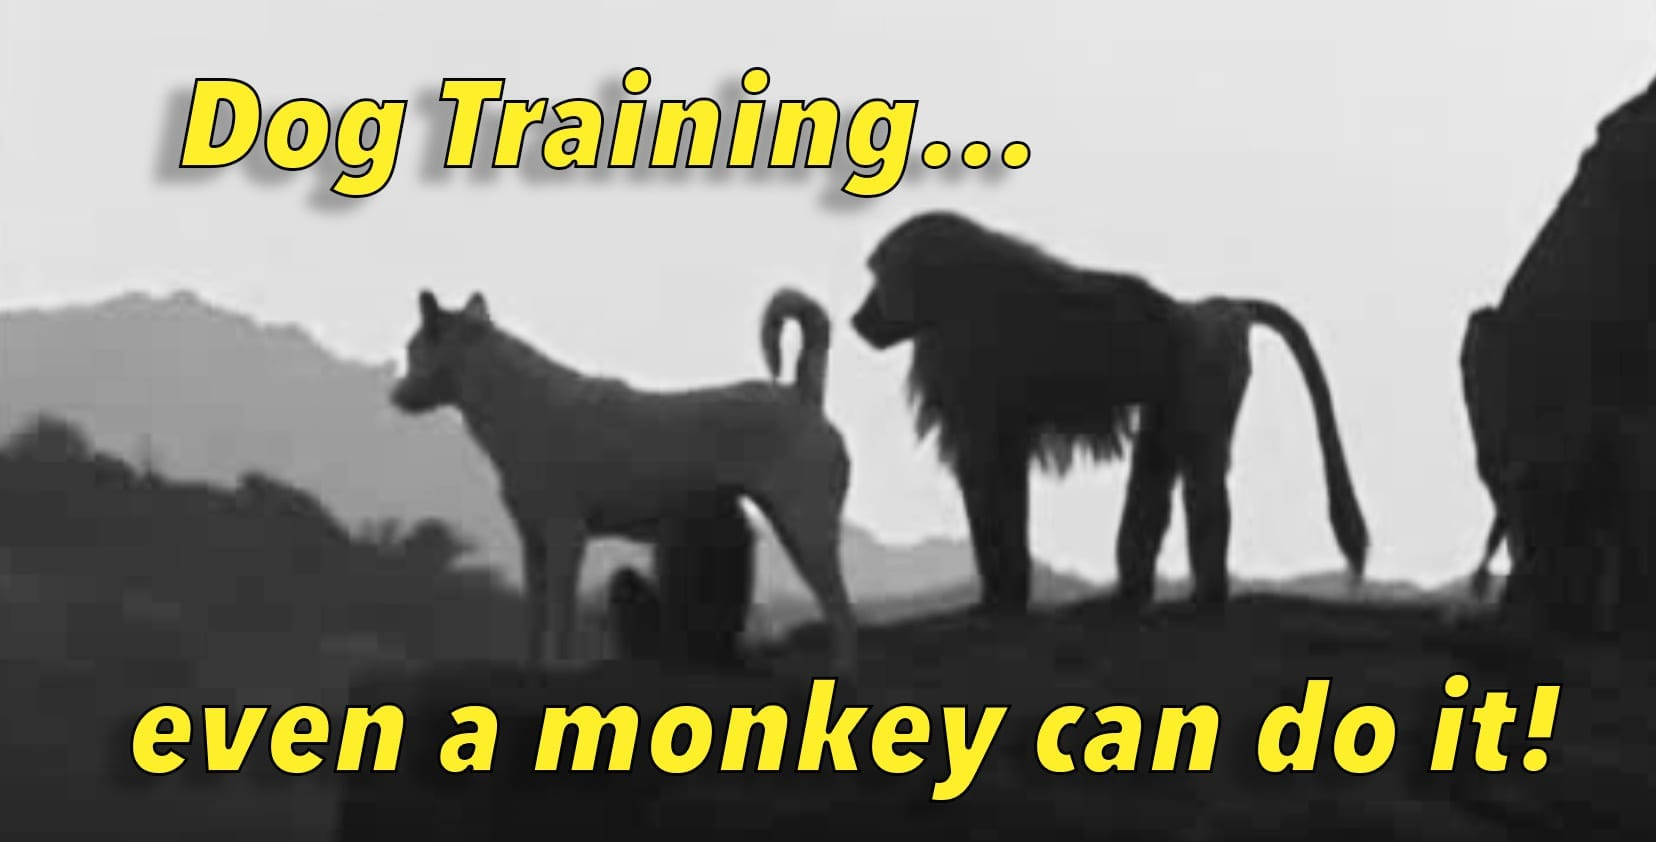 Dog Training - Even a Monkey Can Do It